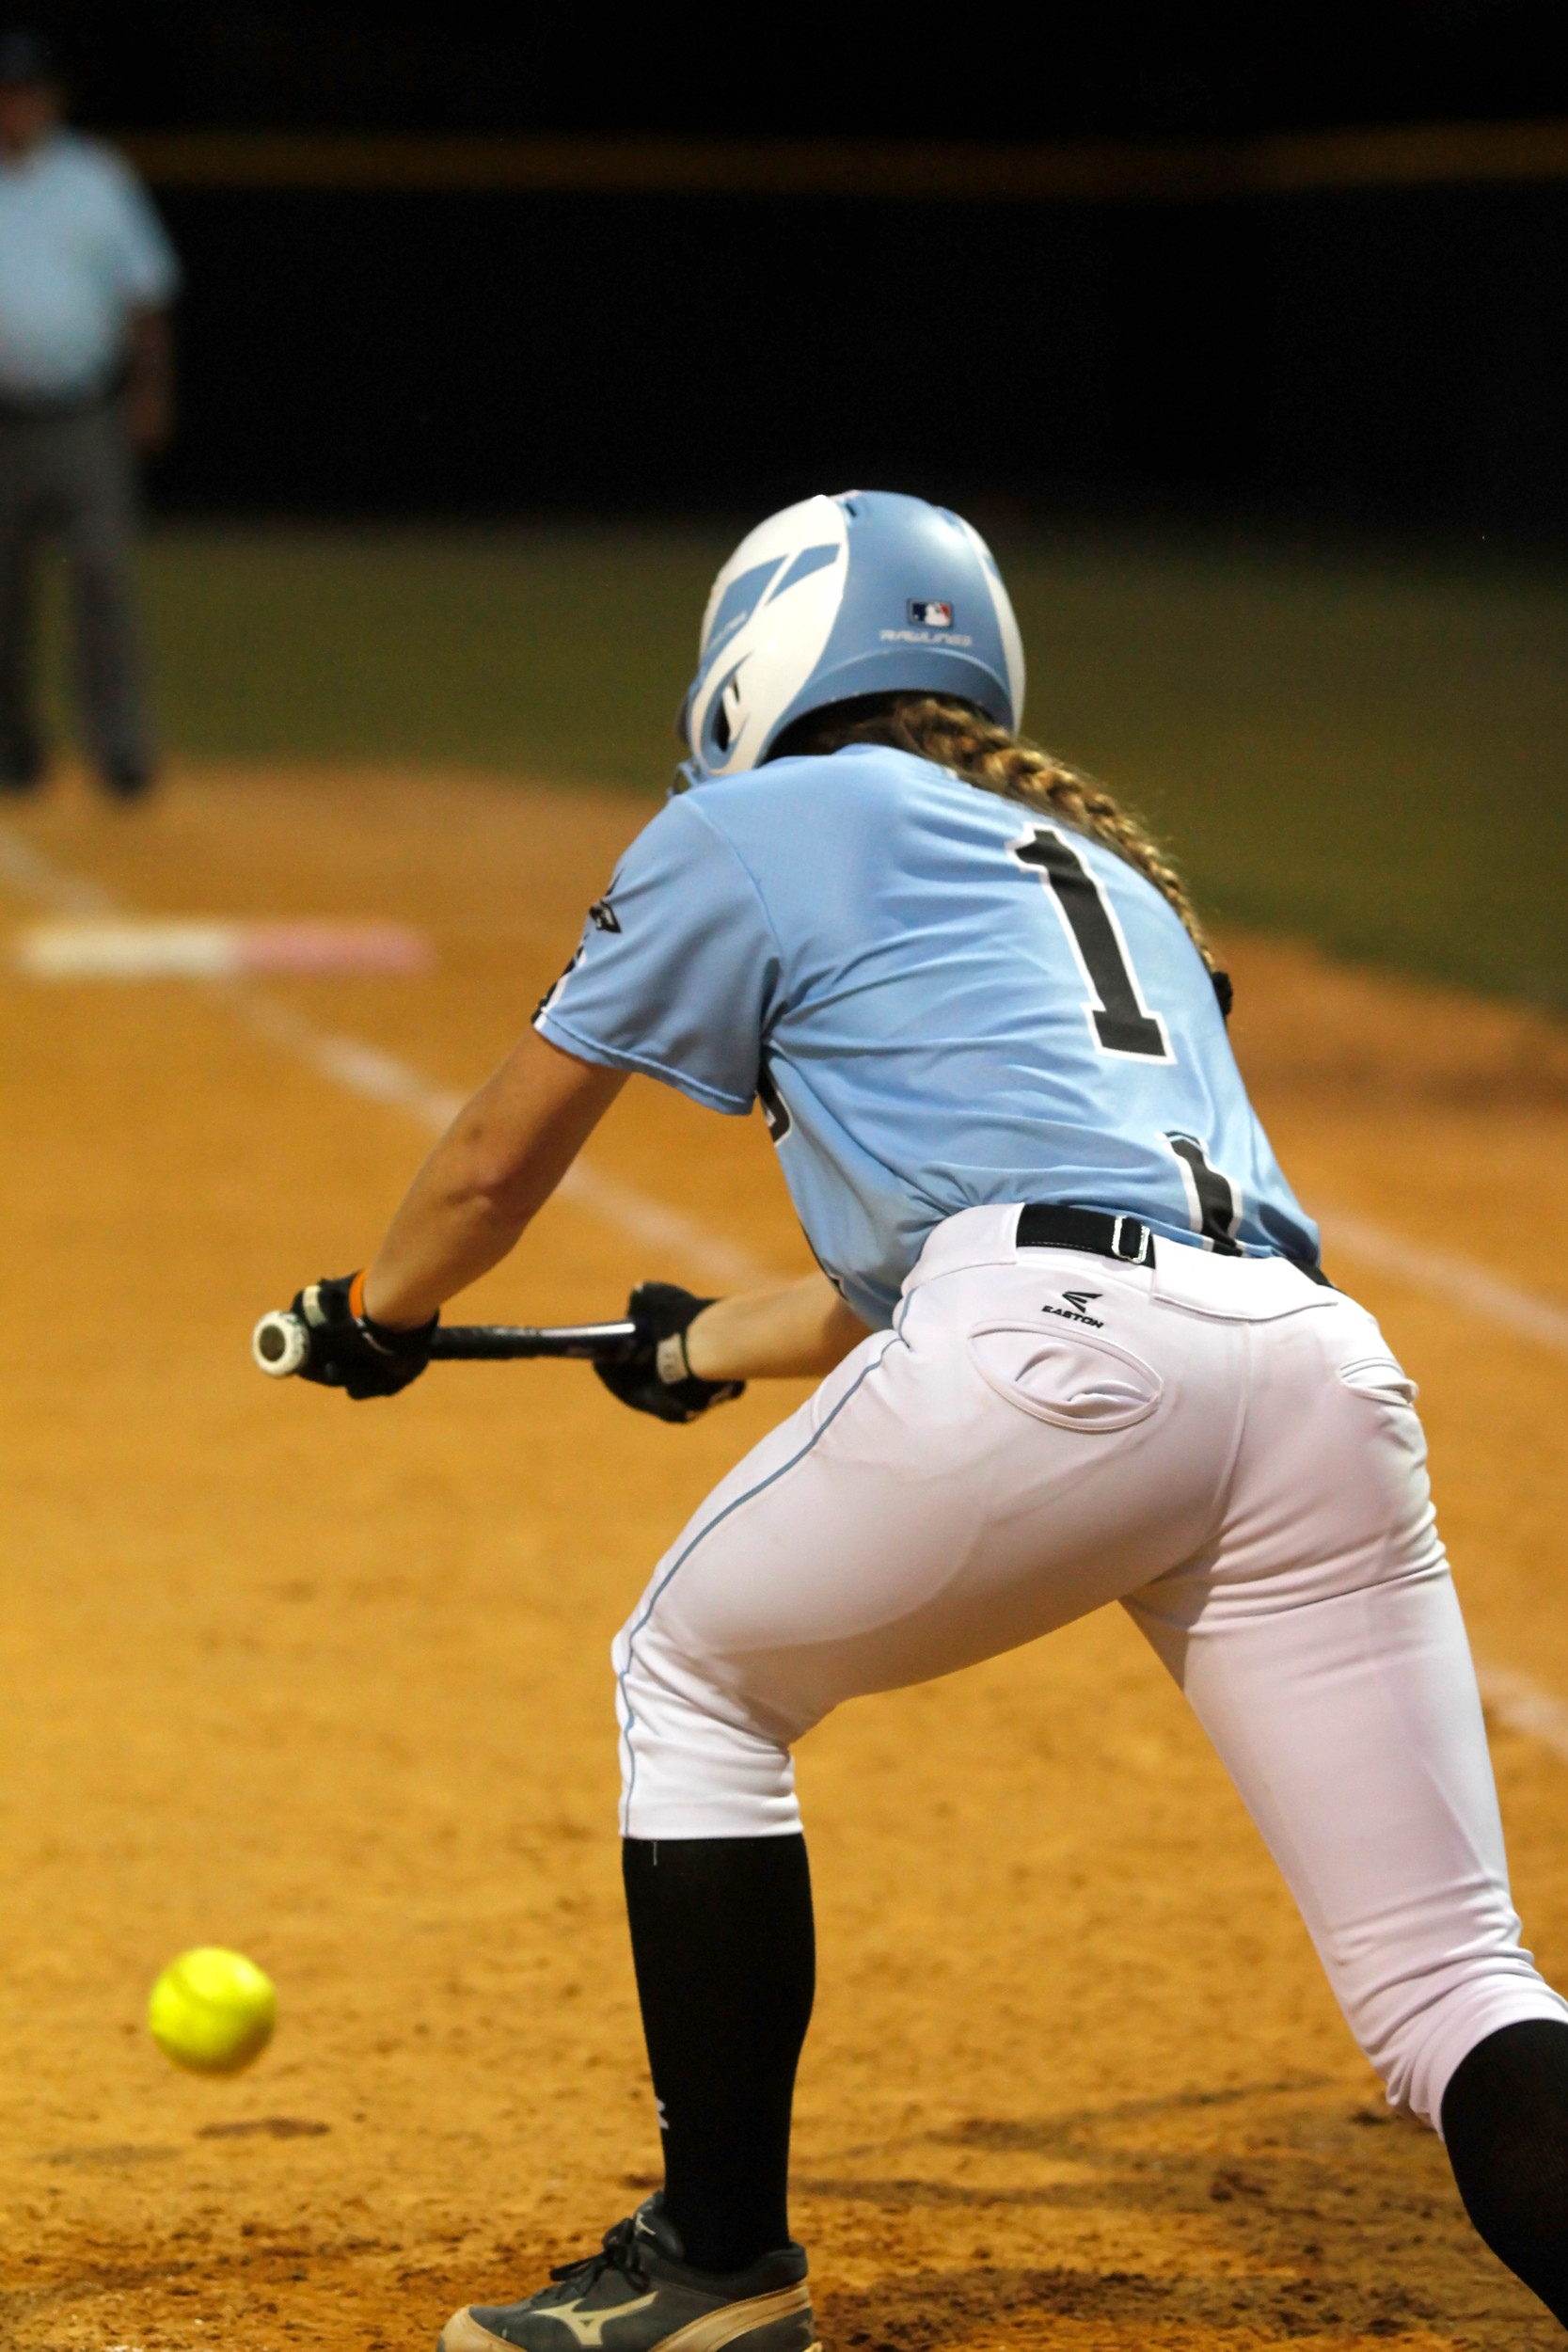 #1 Bailey Wagoner bunts to drive in the game winning 15th run for the Sharks against Ridgeview.